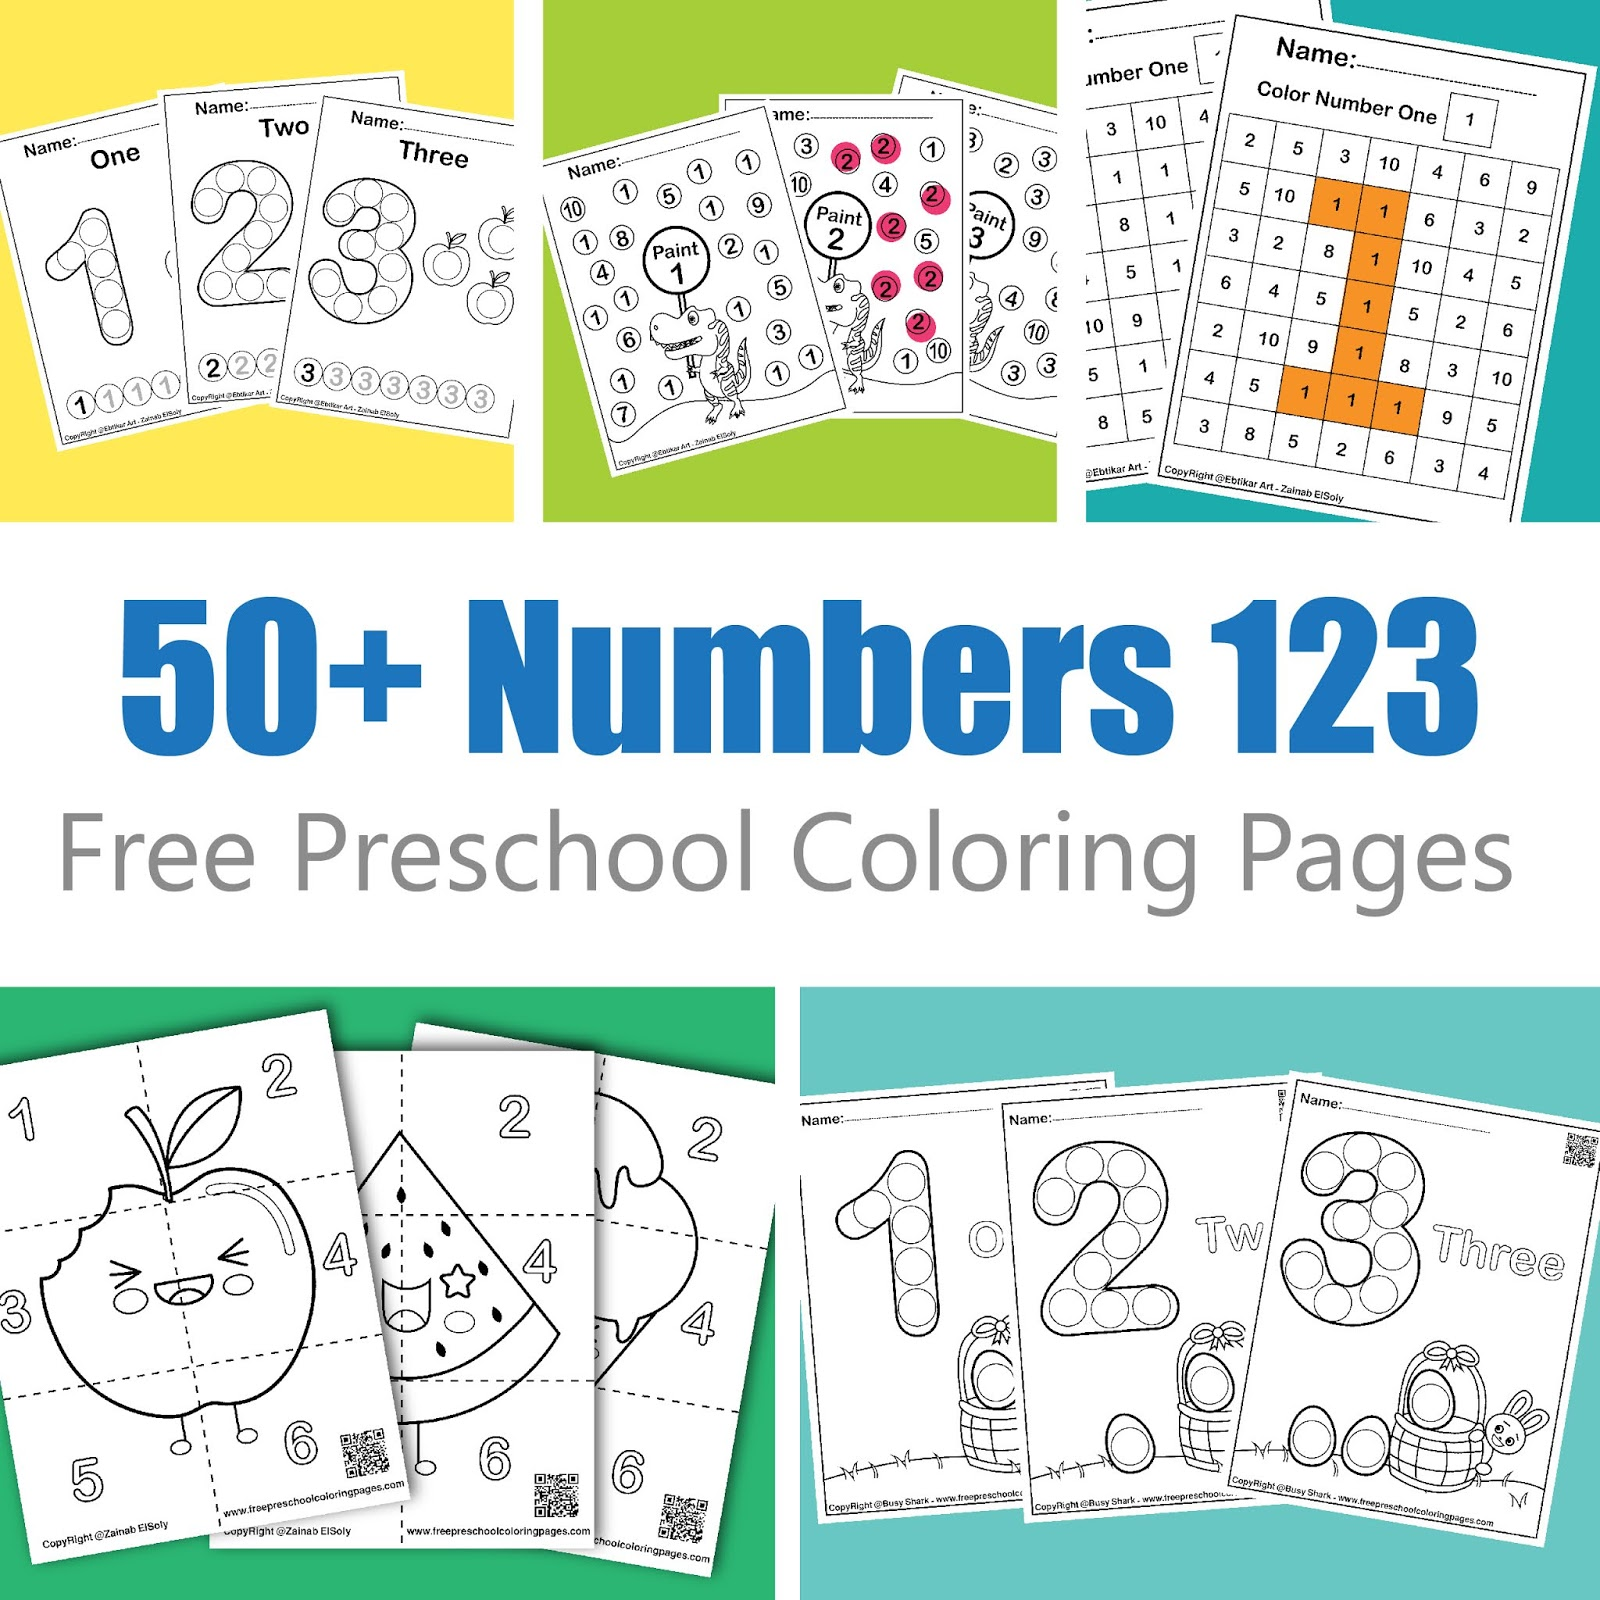 50 Free Numbers Preschool Coloring Pages